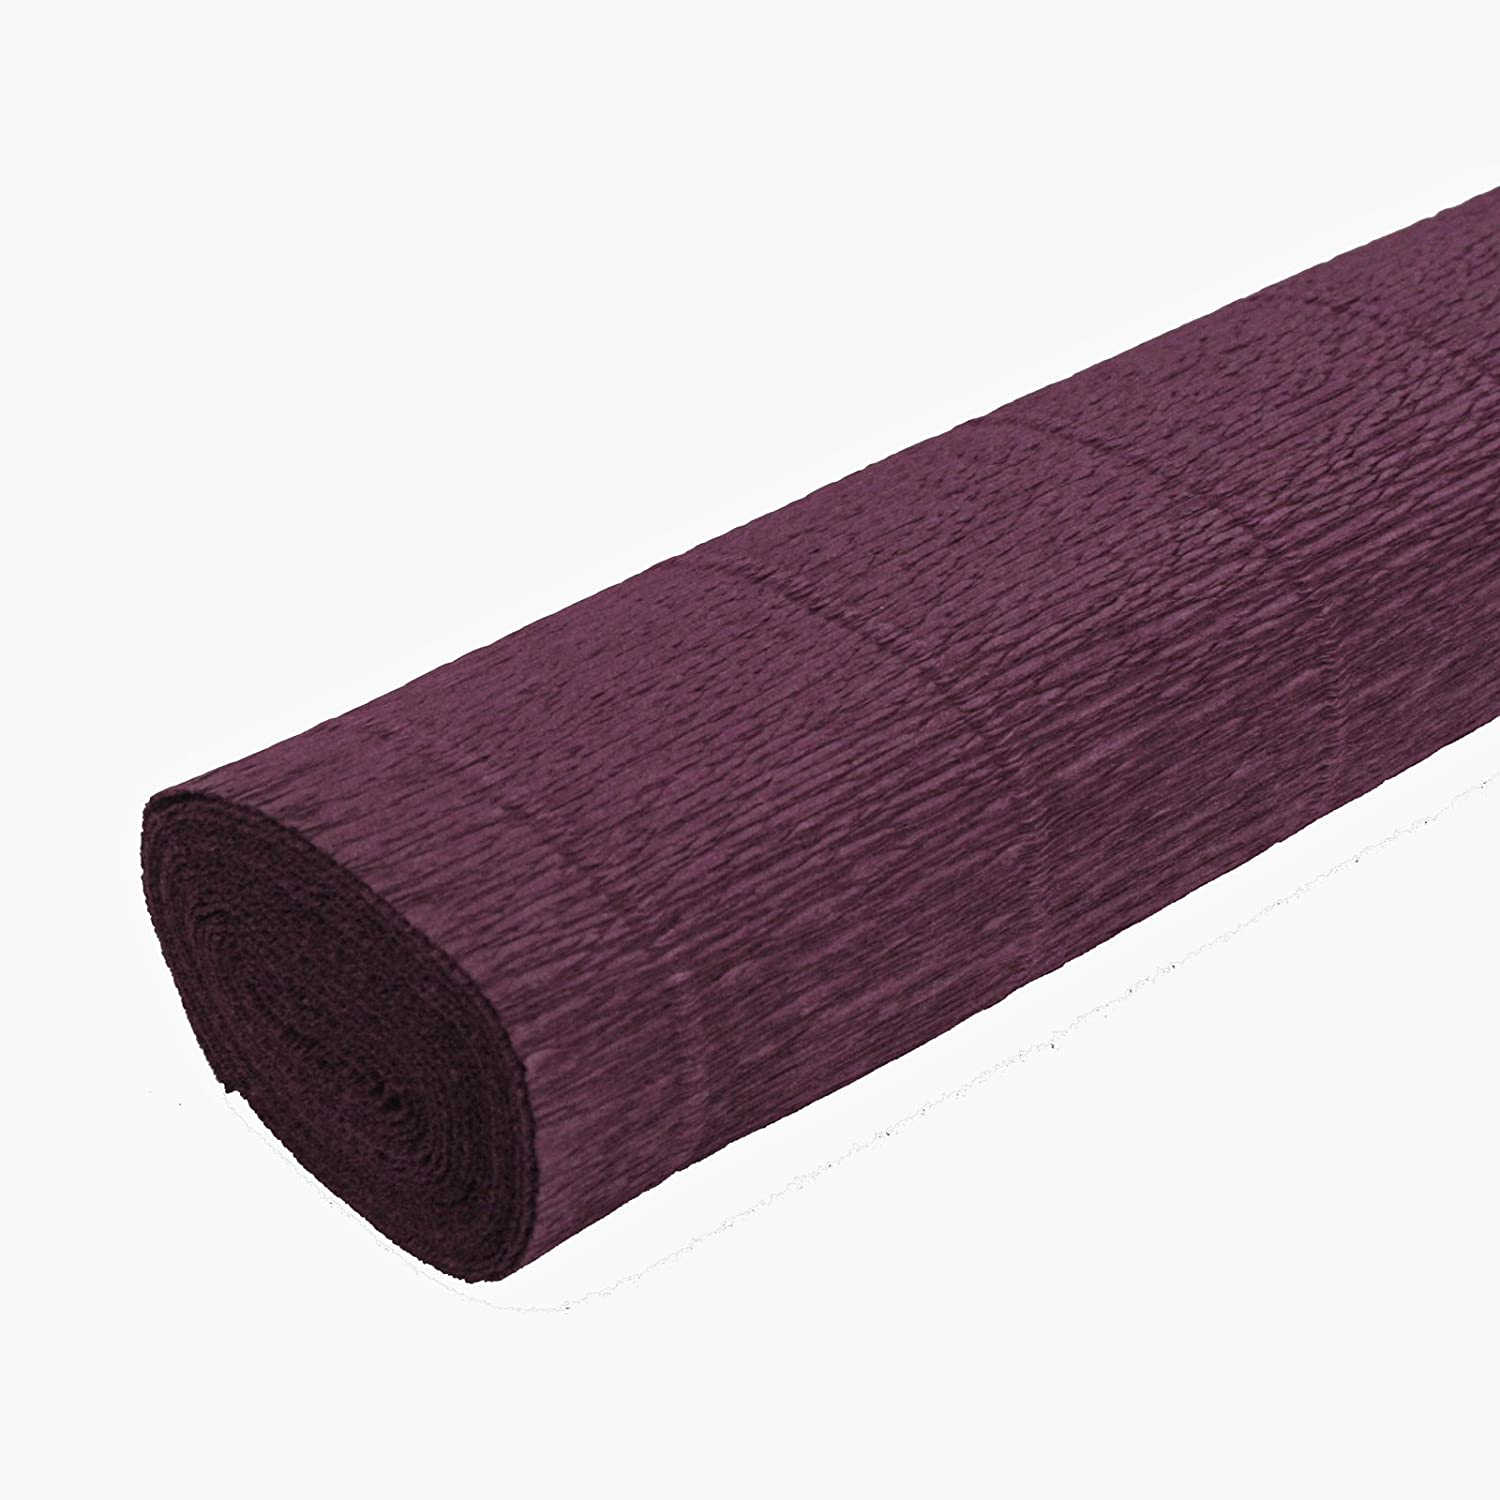 FloristryWarehouse Burgundy Wine Bordeaux 588 Crepe paper roll 20 inches wide x 8ft long. Top quality Italian paper craft Cartotecnica Rossi